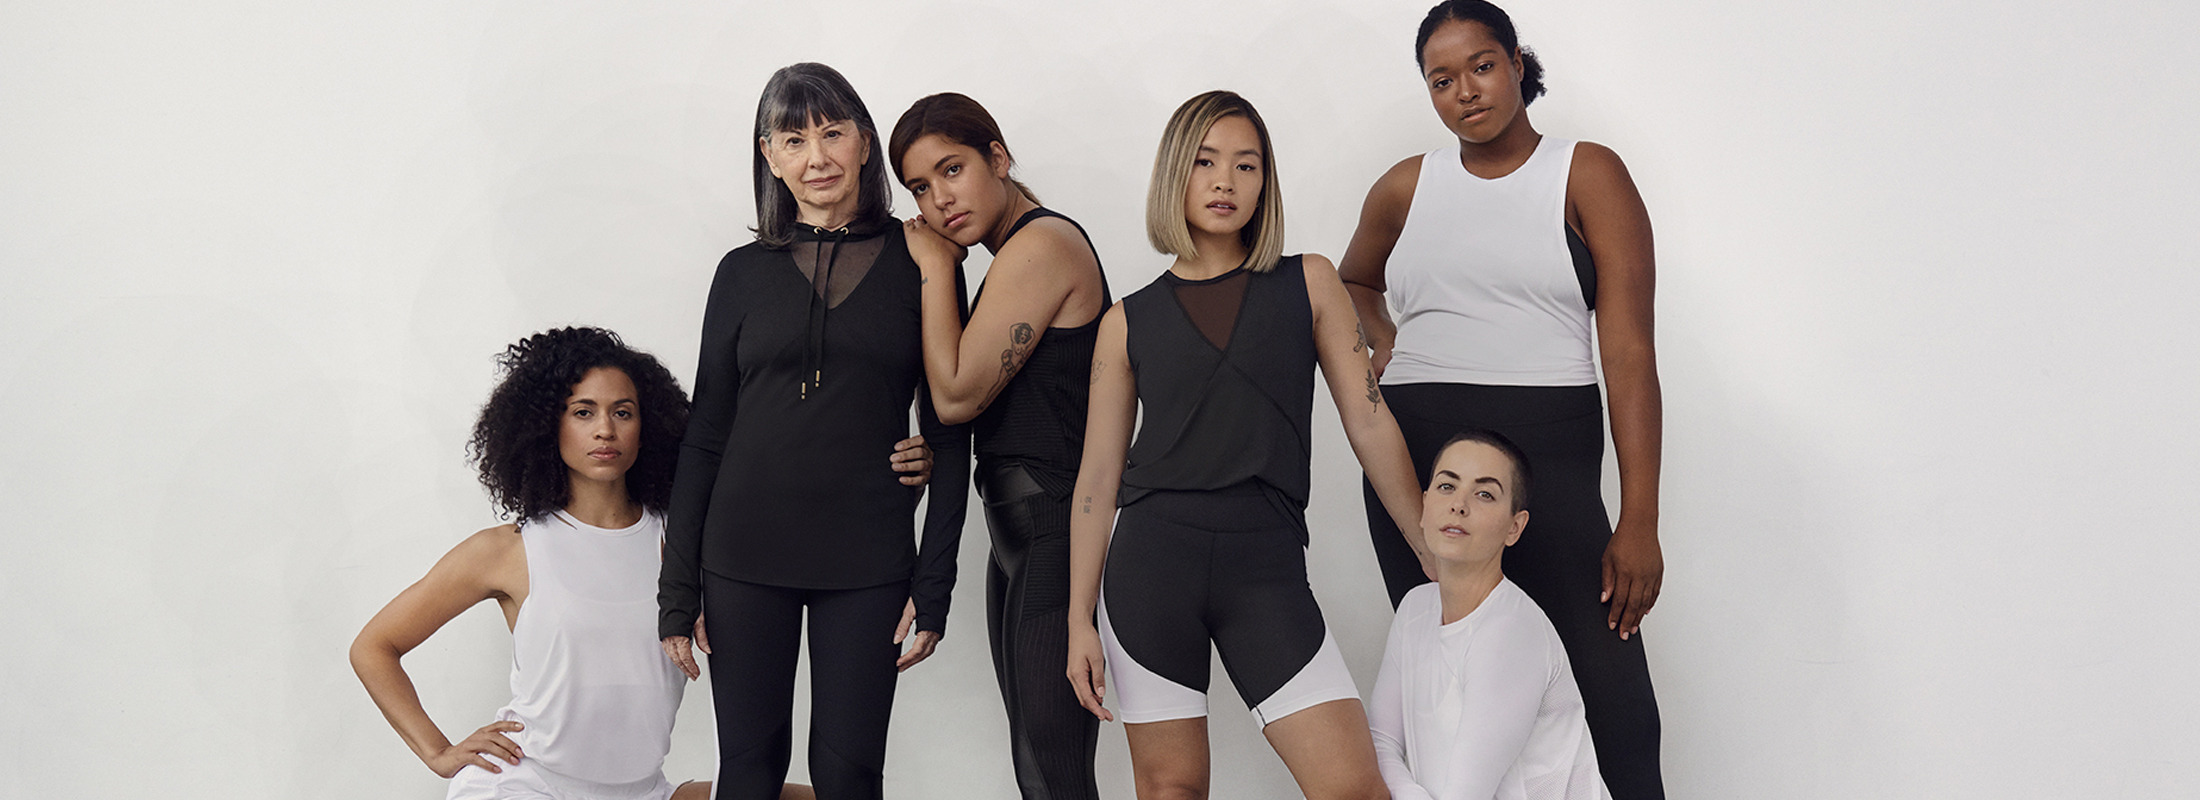 Superbodies Campaign Group-shot of six women.